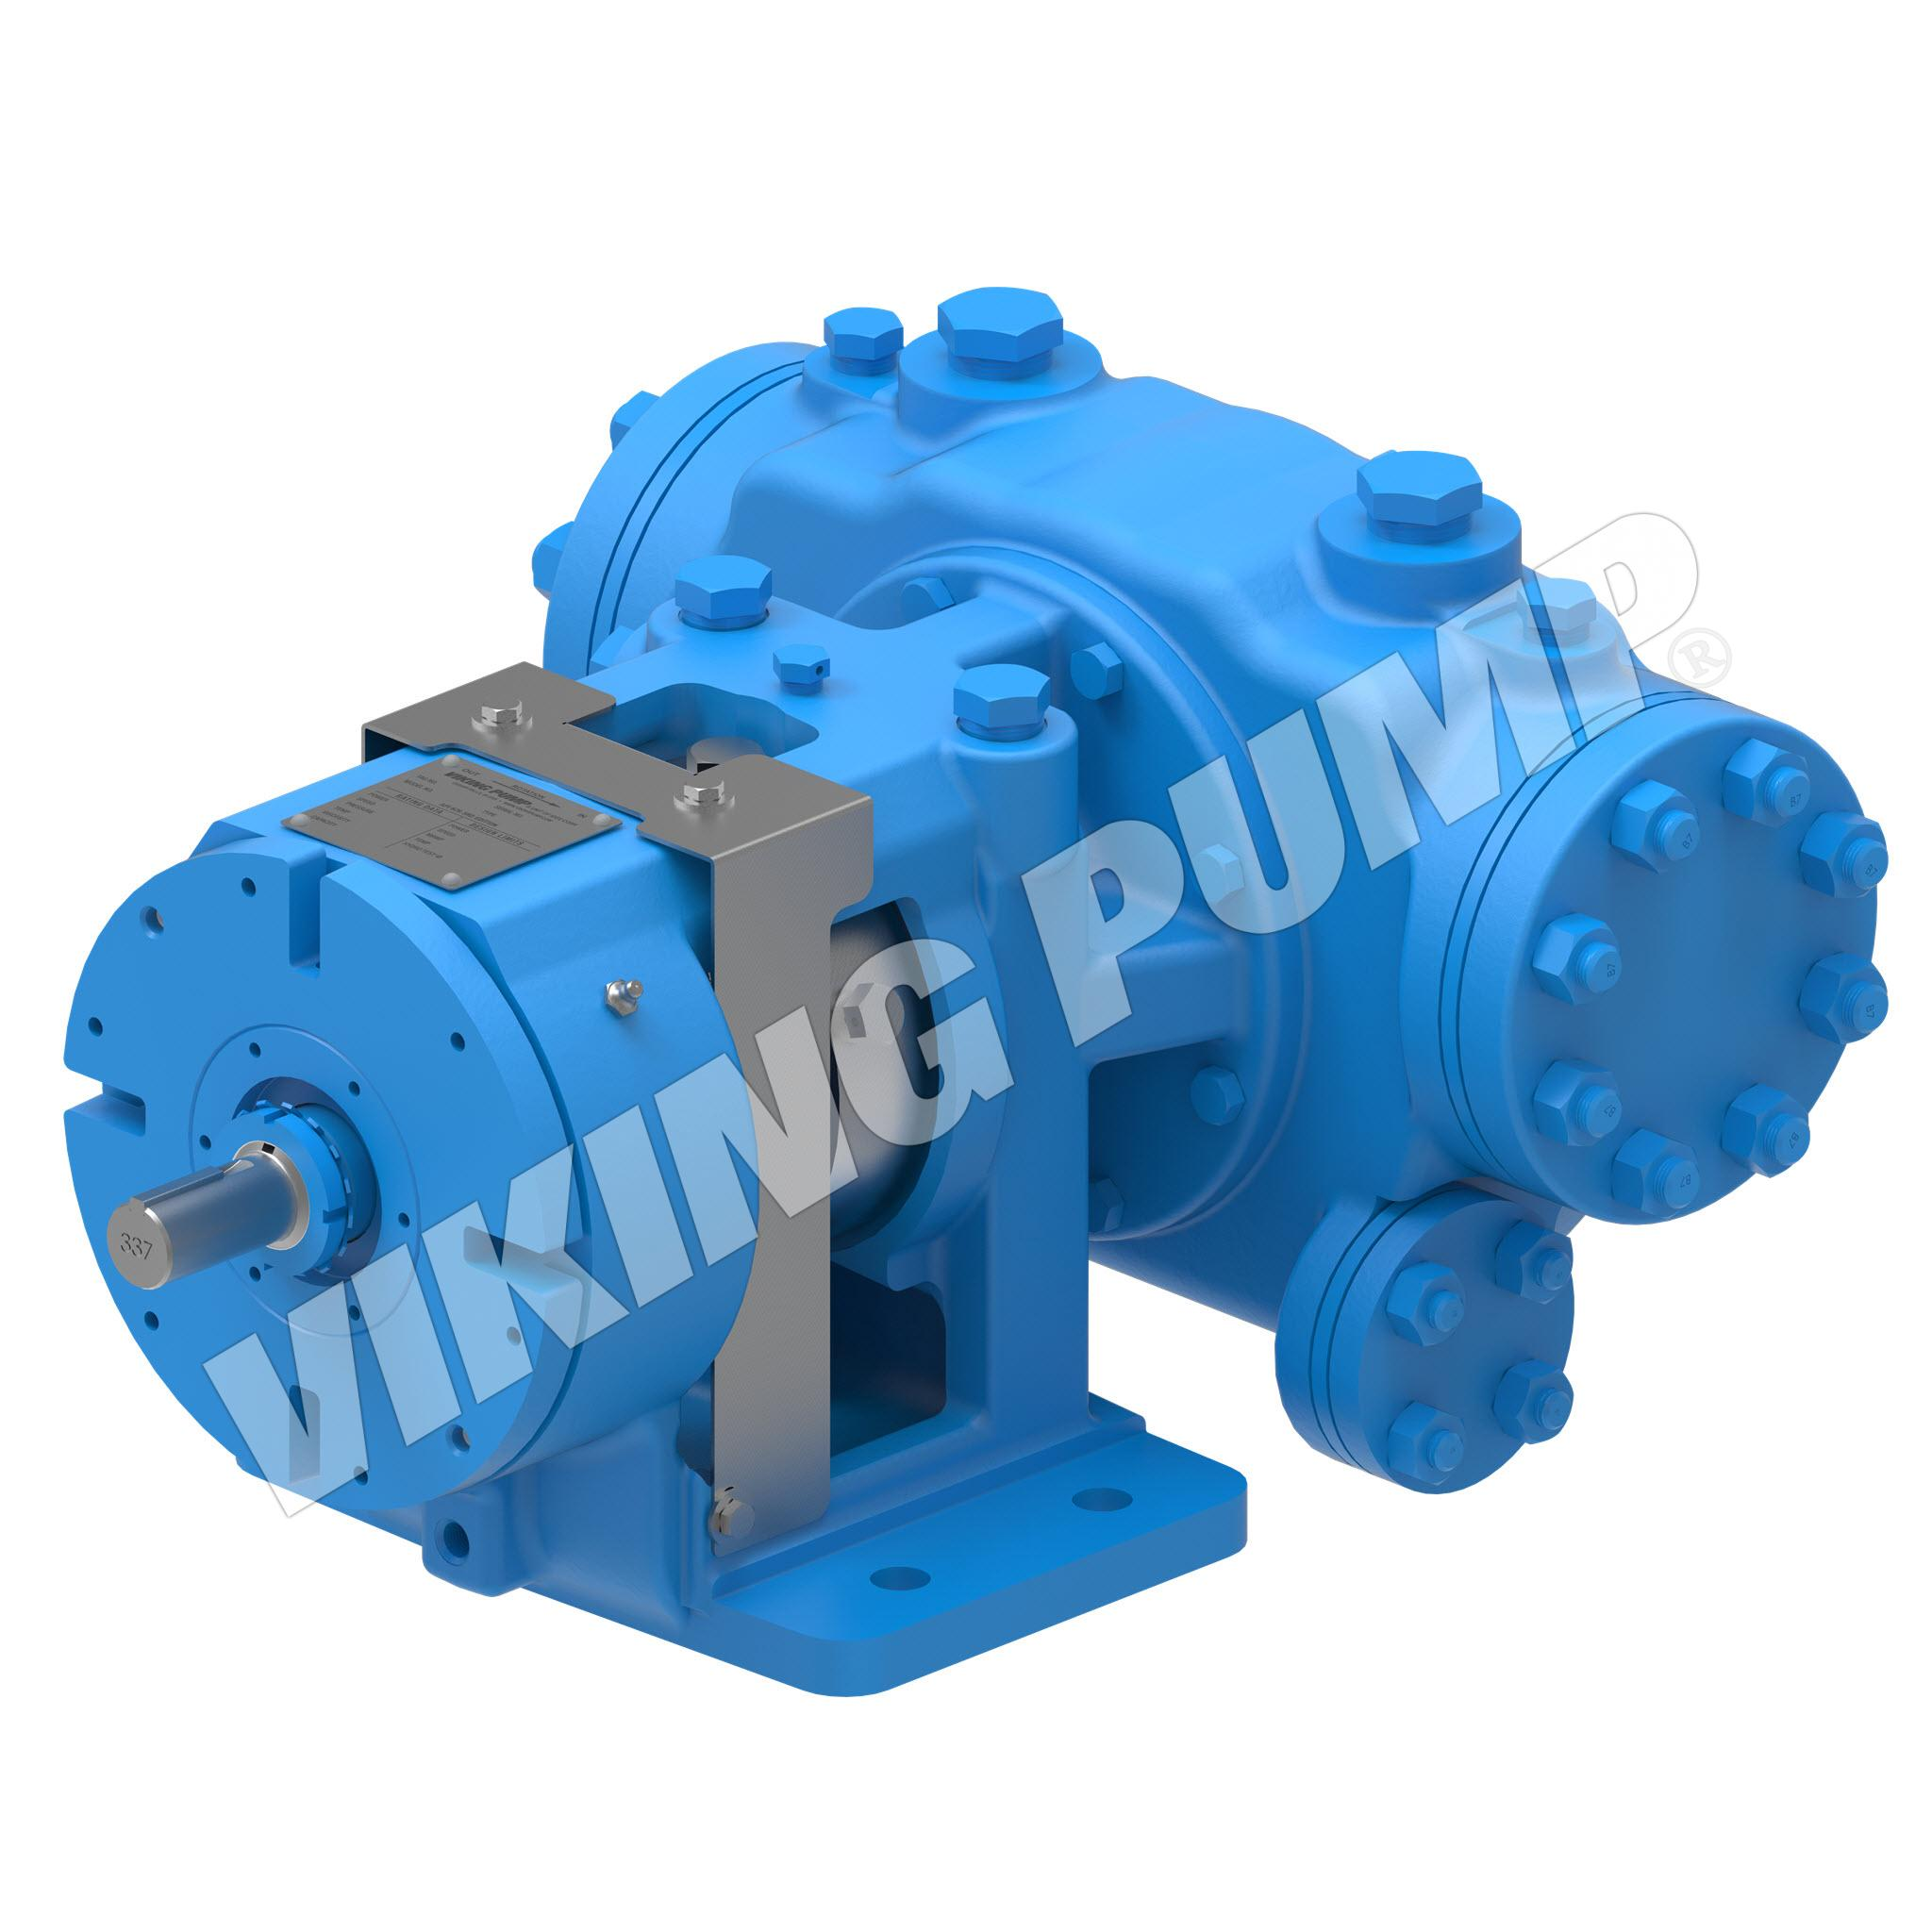 Model KK4223AX, Foot-Mounted, API 682 Seal, API 676-Compliant Pump